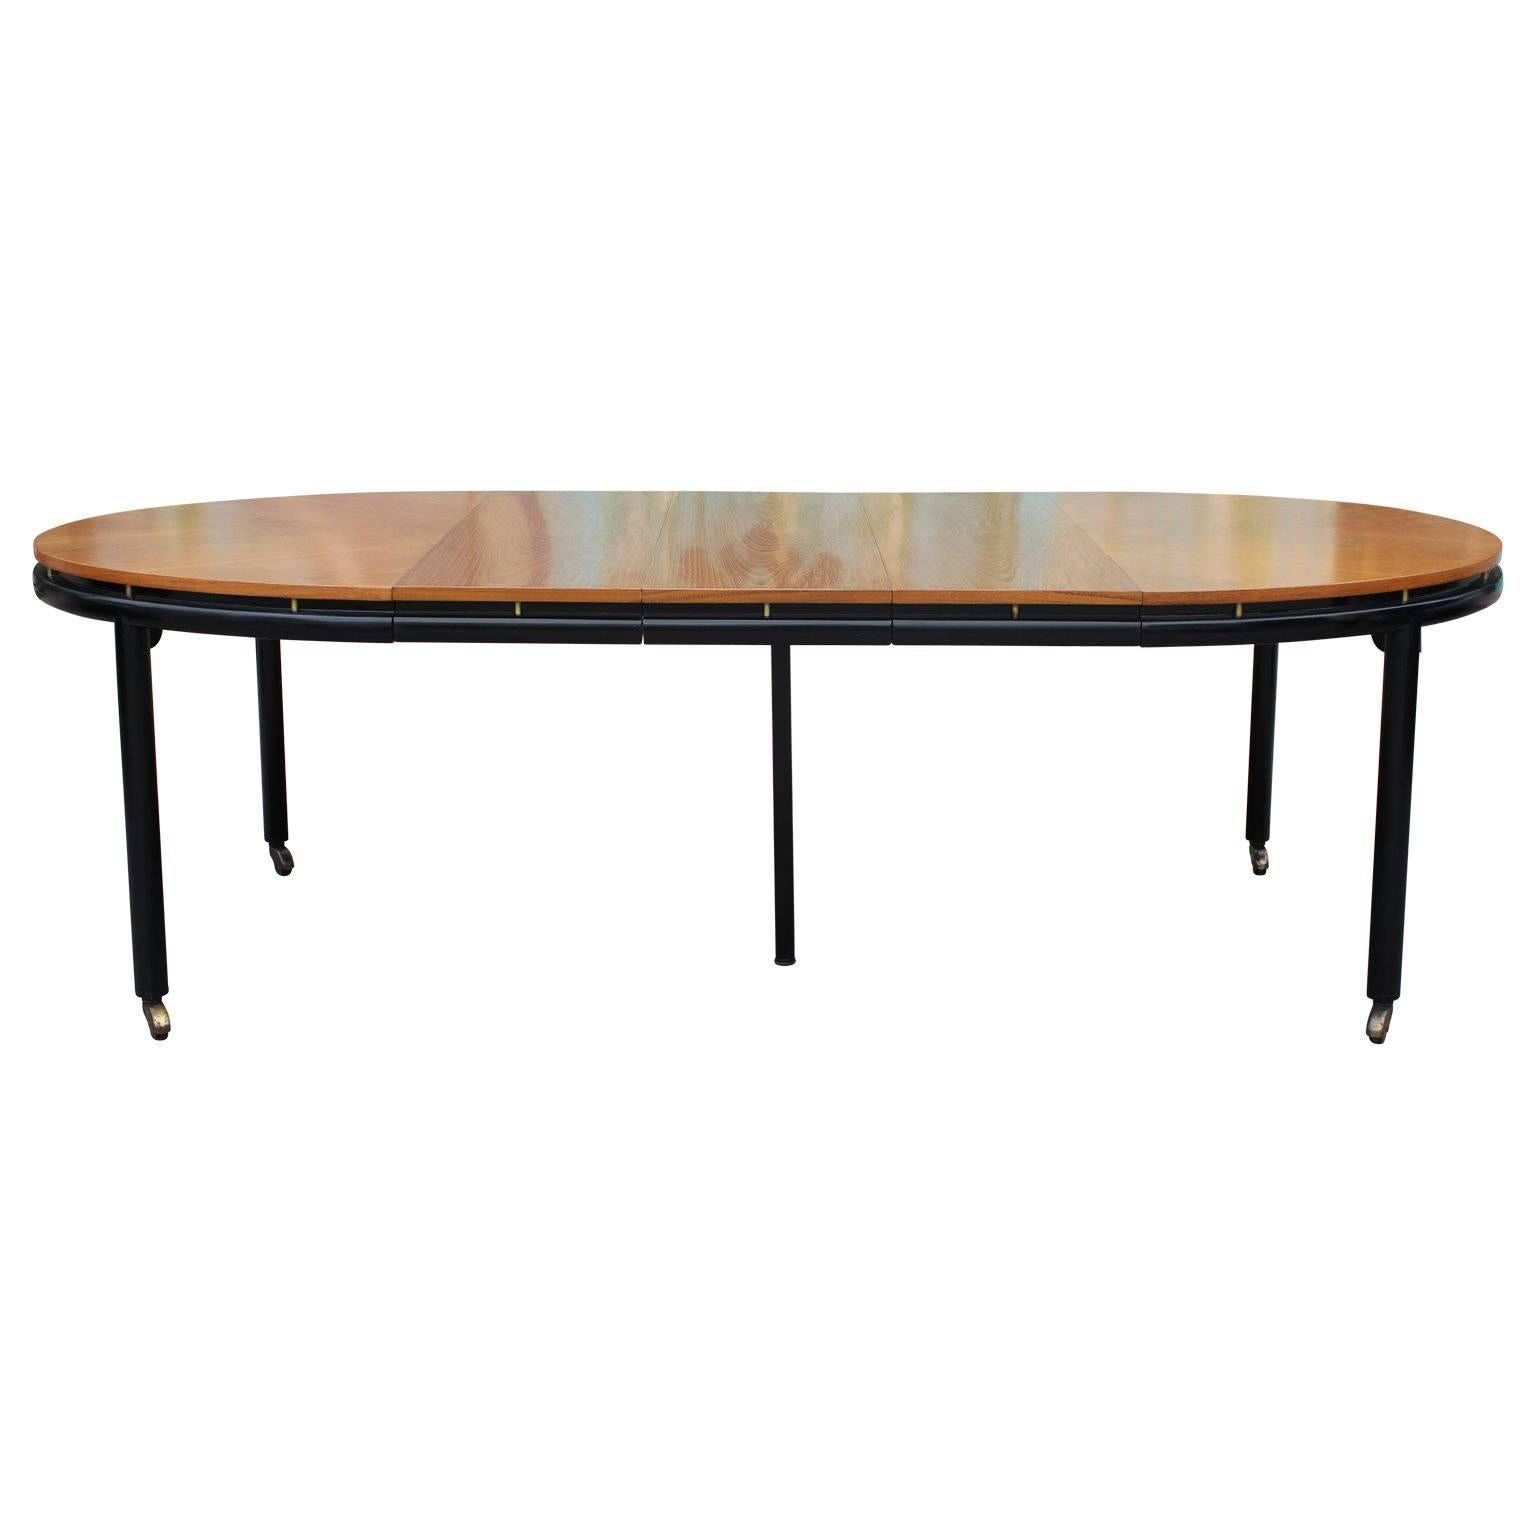 Baker Furniture Company Dining Room Tables 21 For Sale at 1stdibs